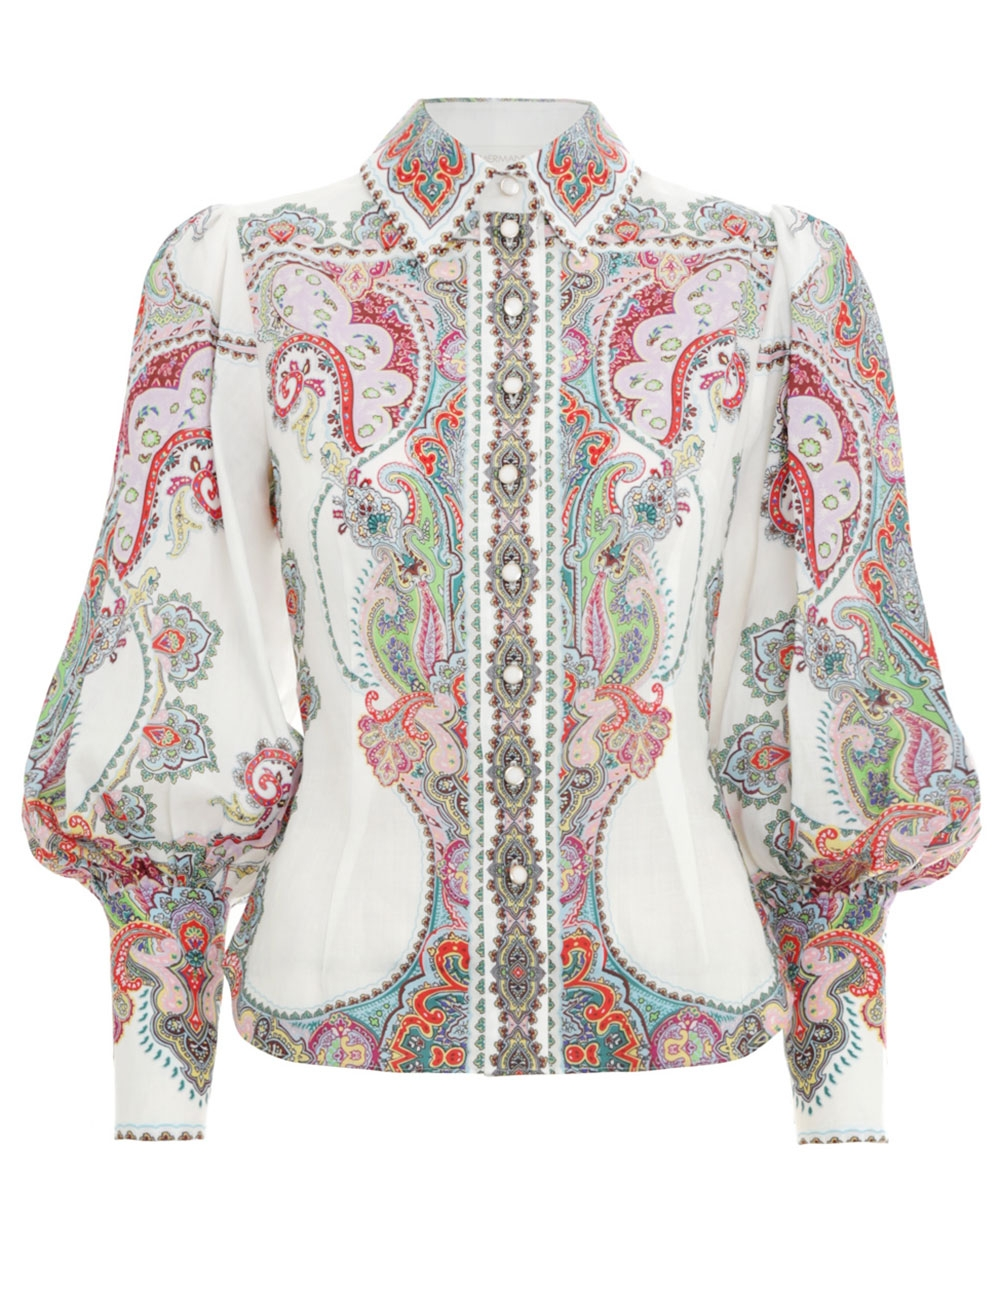 Ninety-Six Filigree Shirt